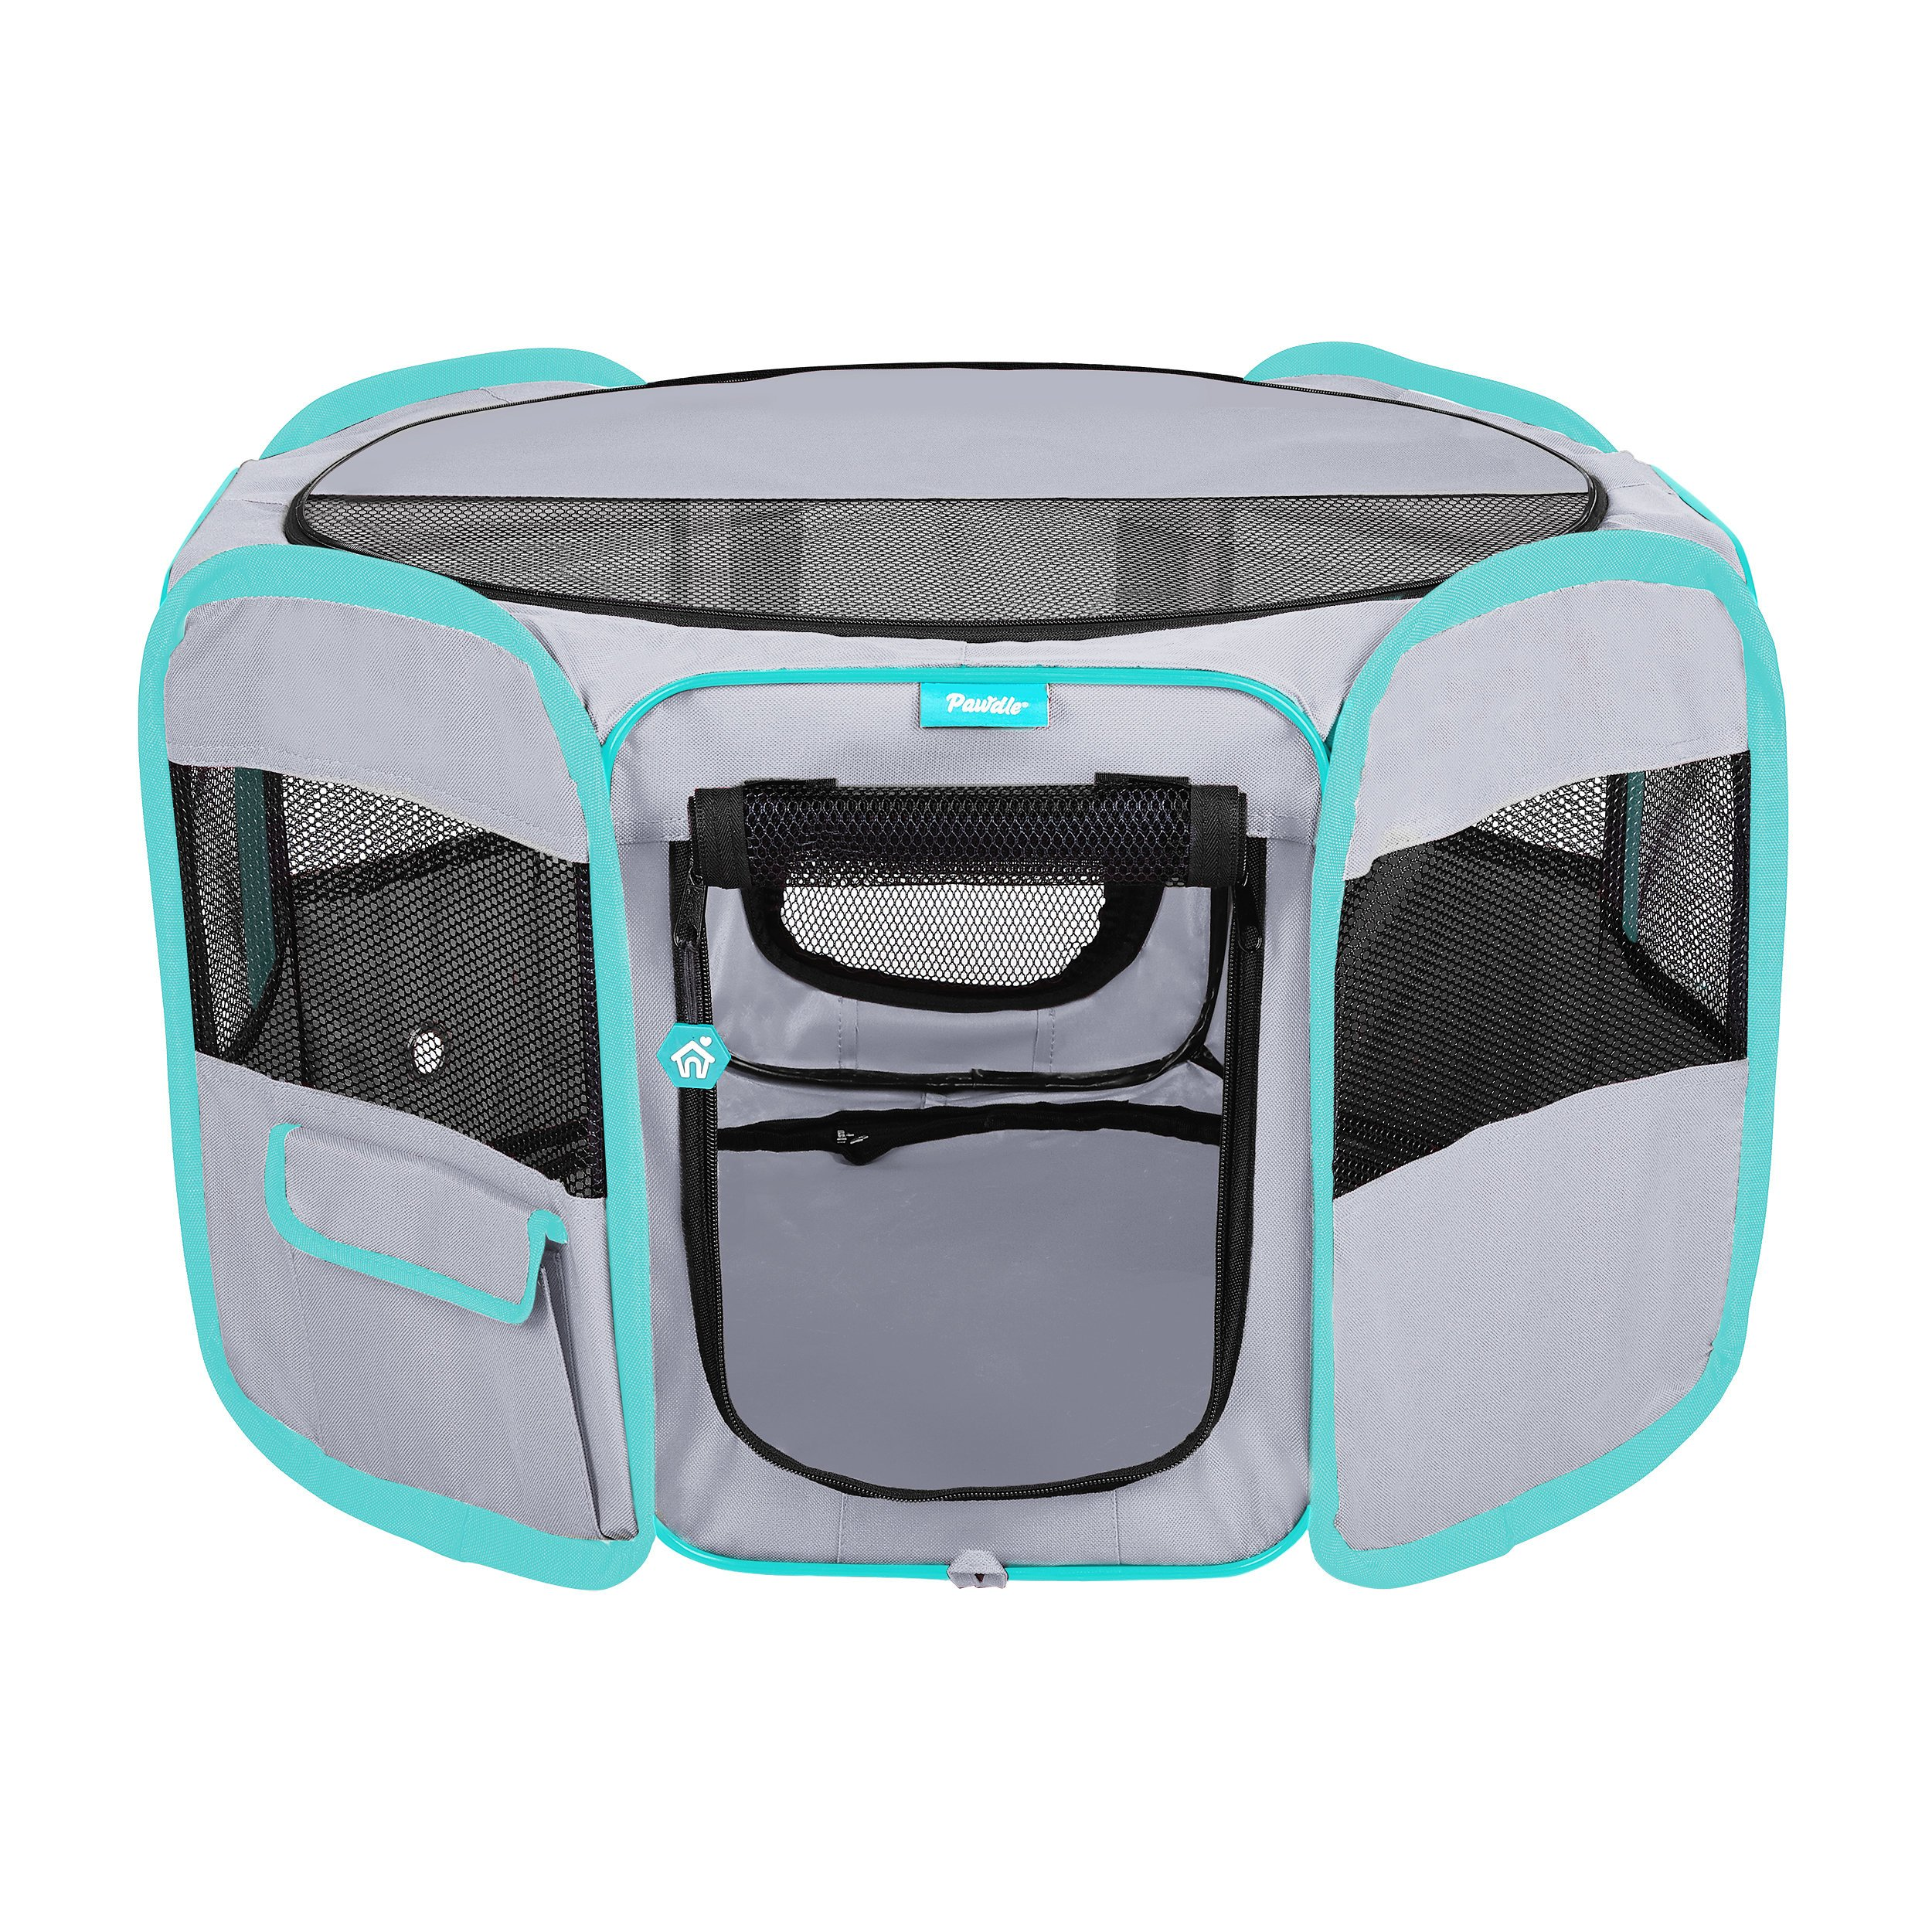 DELUXE PREMIUM Pet Dog Playpen Portable Soft Dog Exercise Pen Kennel with Carry Bag for Dogs, Cats, Kittens, and all Pets (Small, Grey)